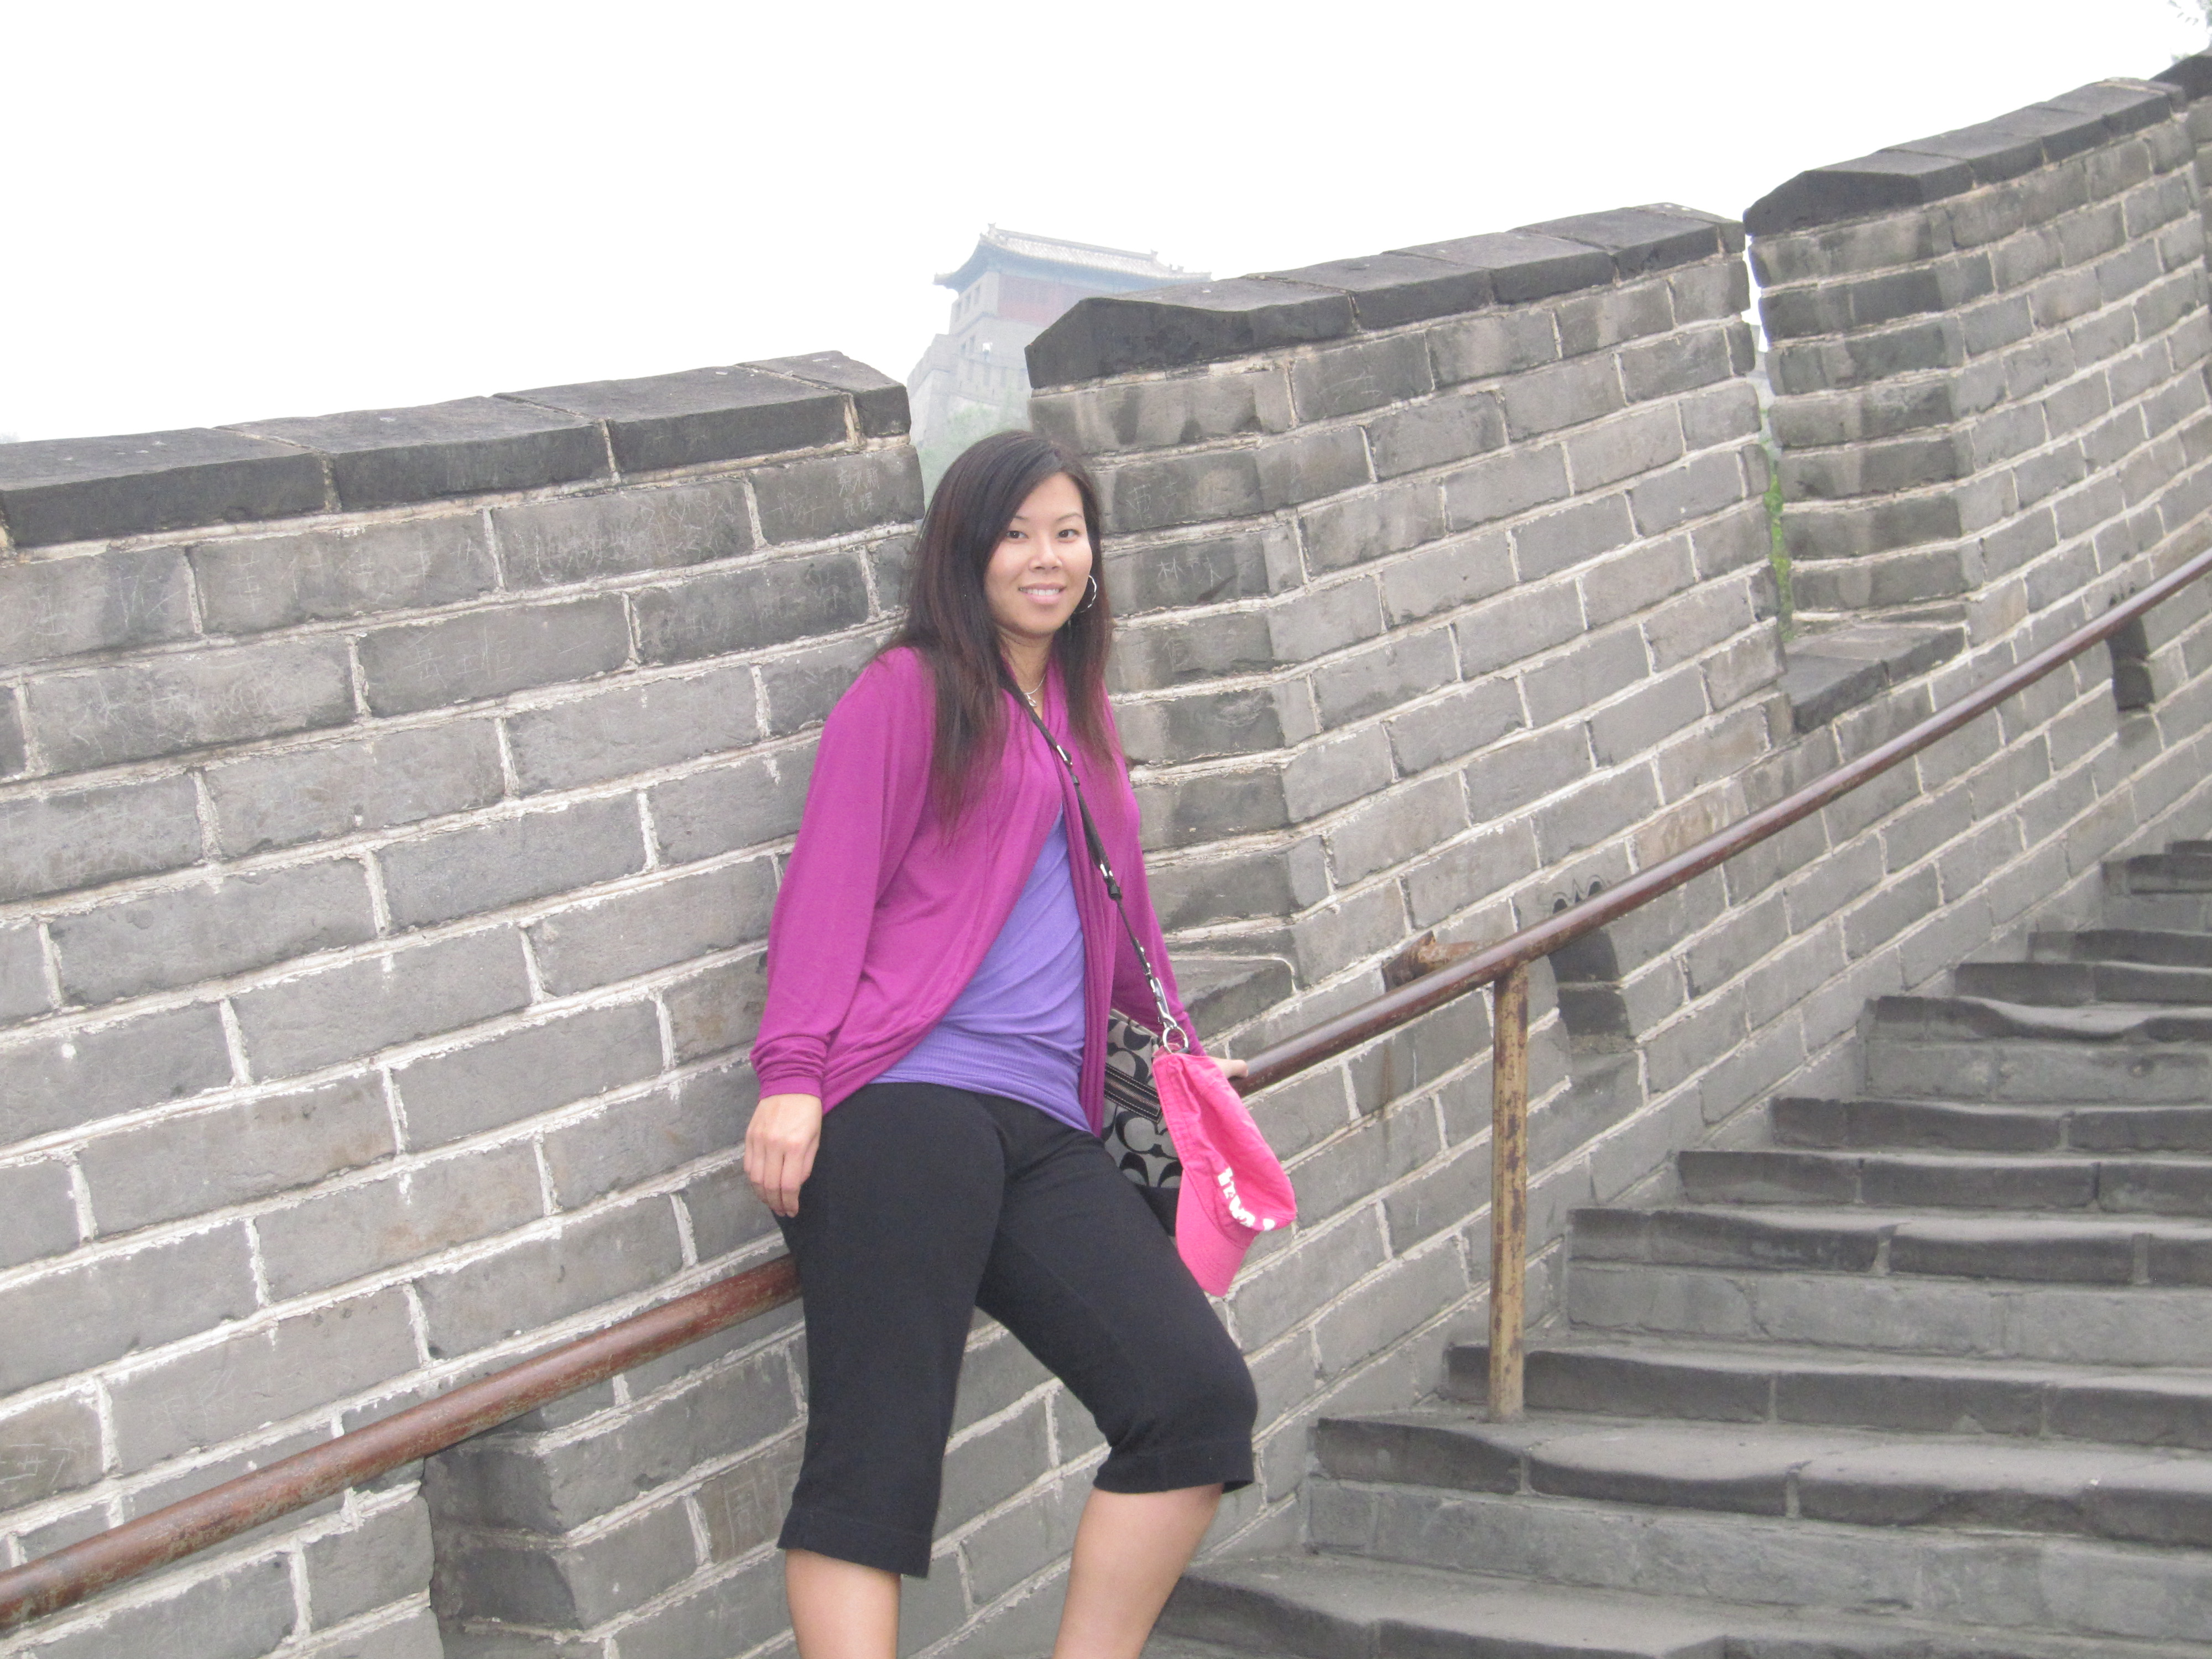 Climbing the Great Wall in Beijing (photo courtesy of Cindy Chau)